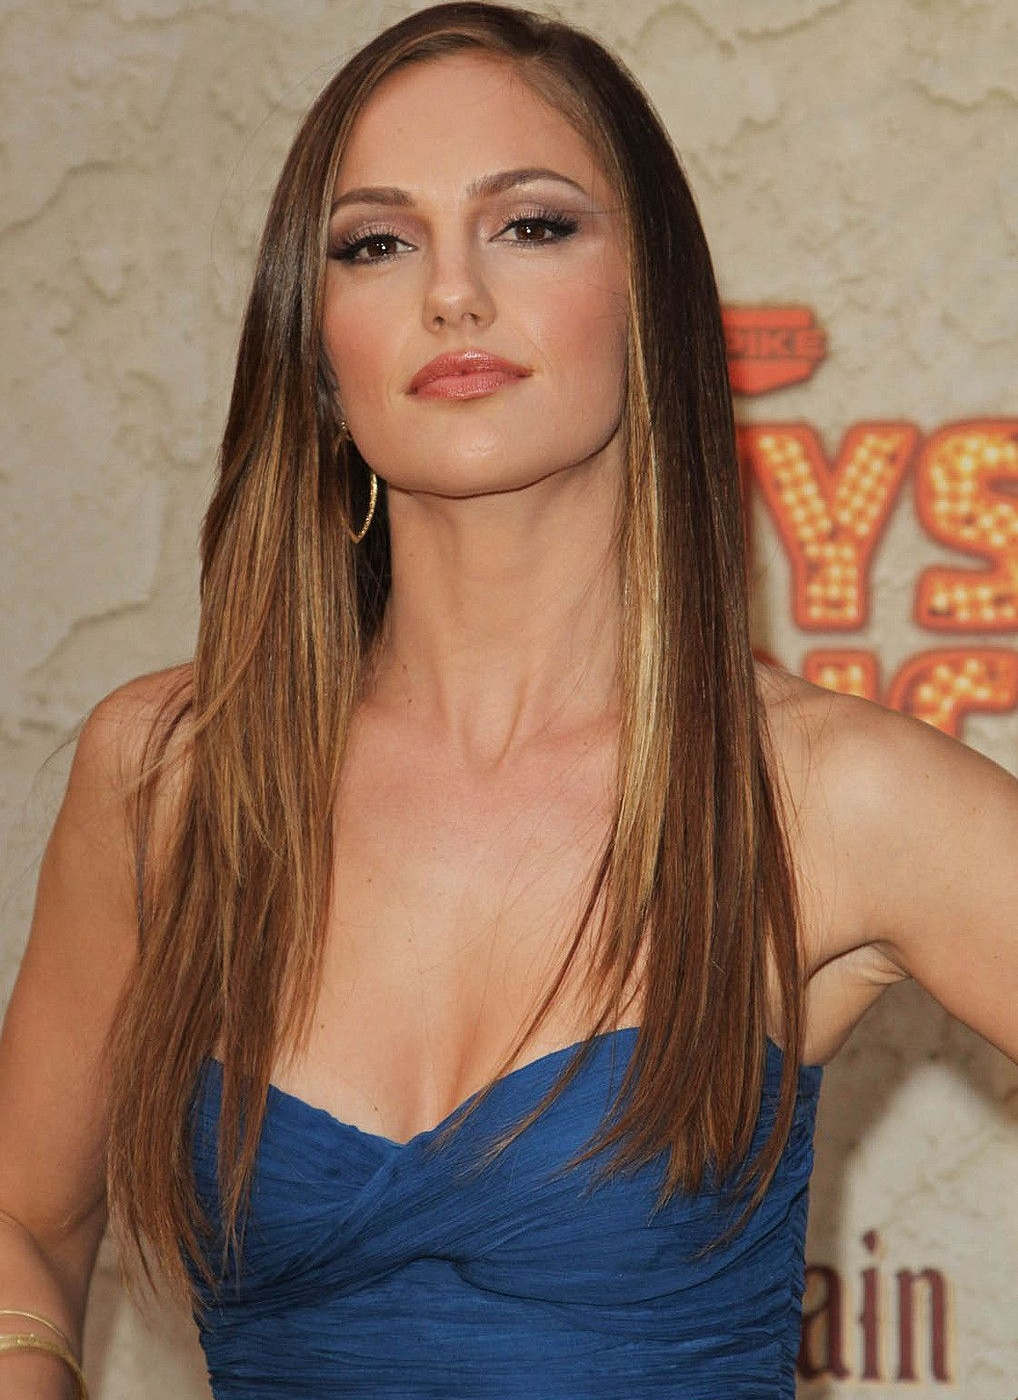 Minka Kelly PhotoShoot - bollywood biography and hot picture